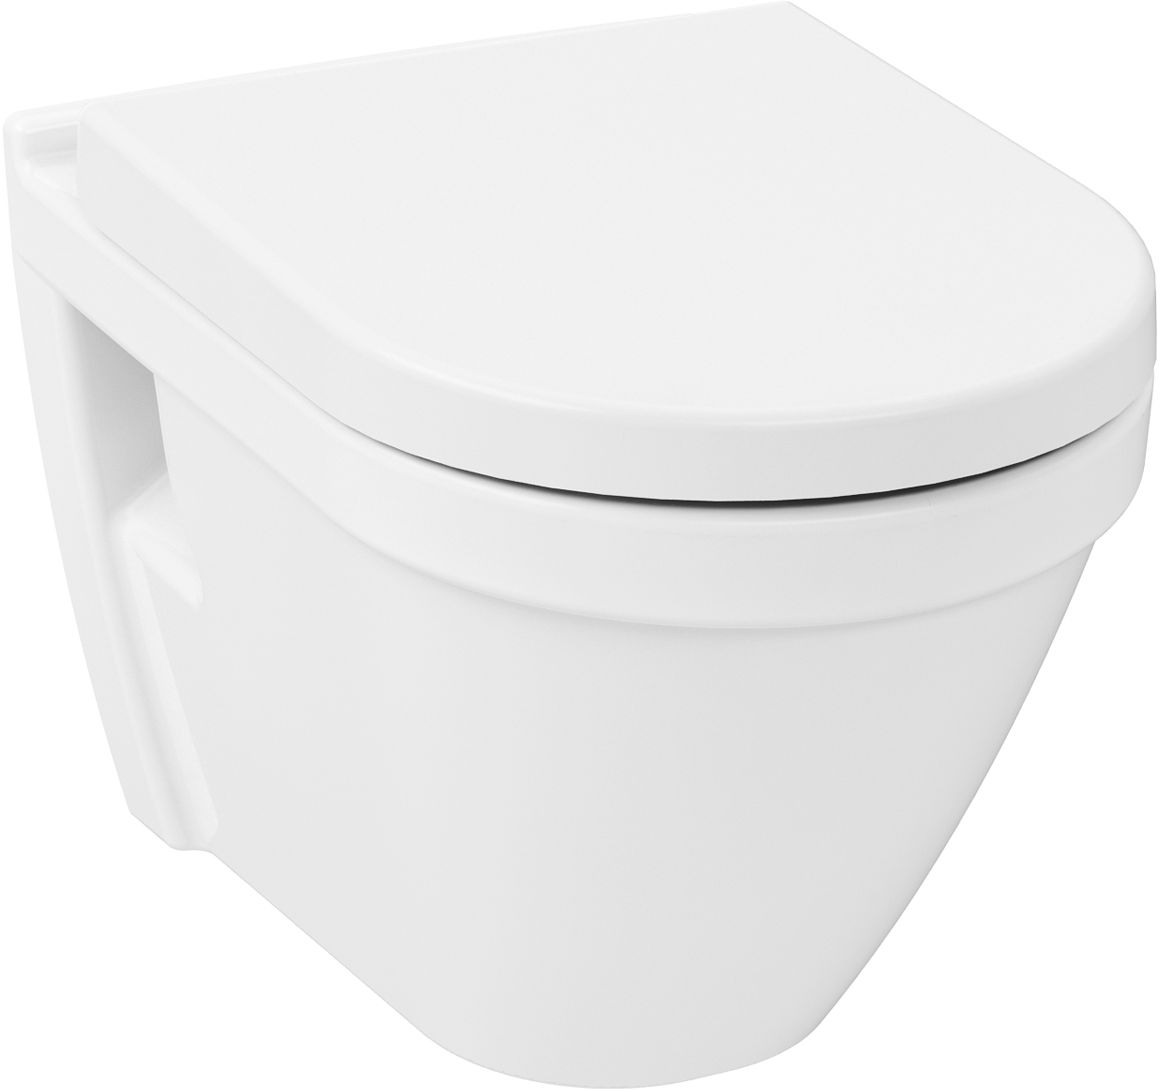 WC-istuin Vitra S50 seinämalli 480x360 mm Soft Close-kannella